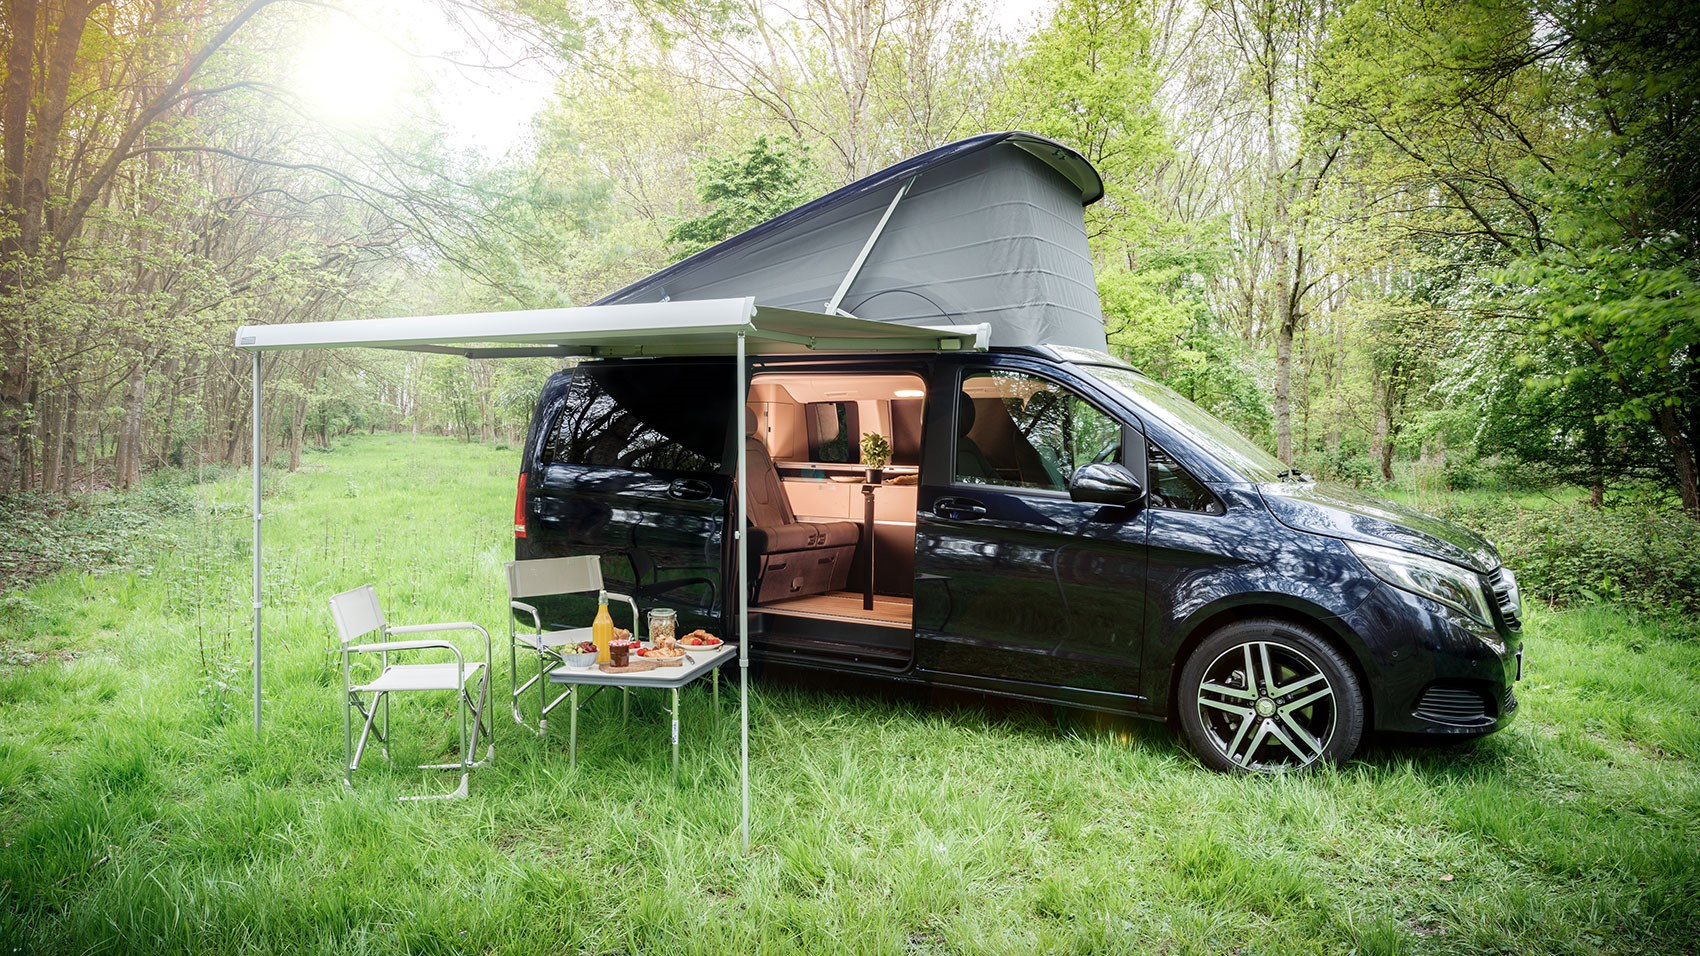 The CAR magazine Mercedes Benz Marco Polo camper van review